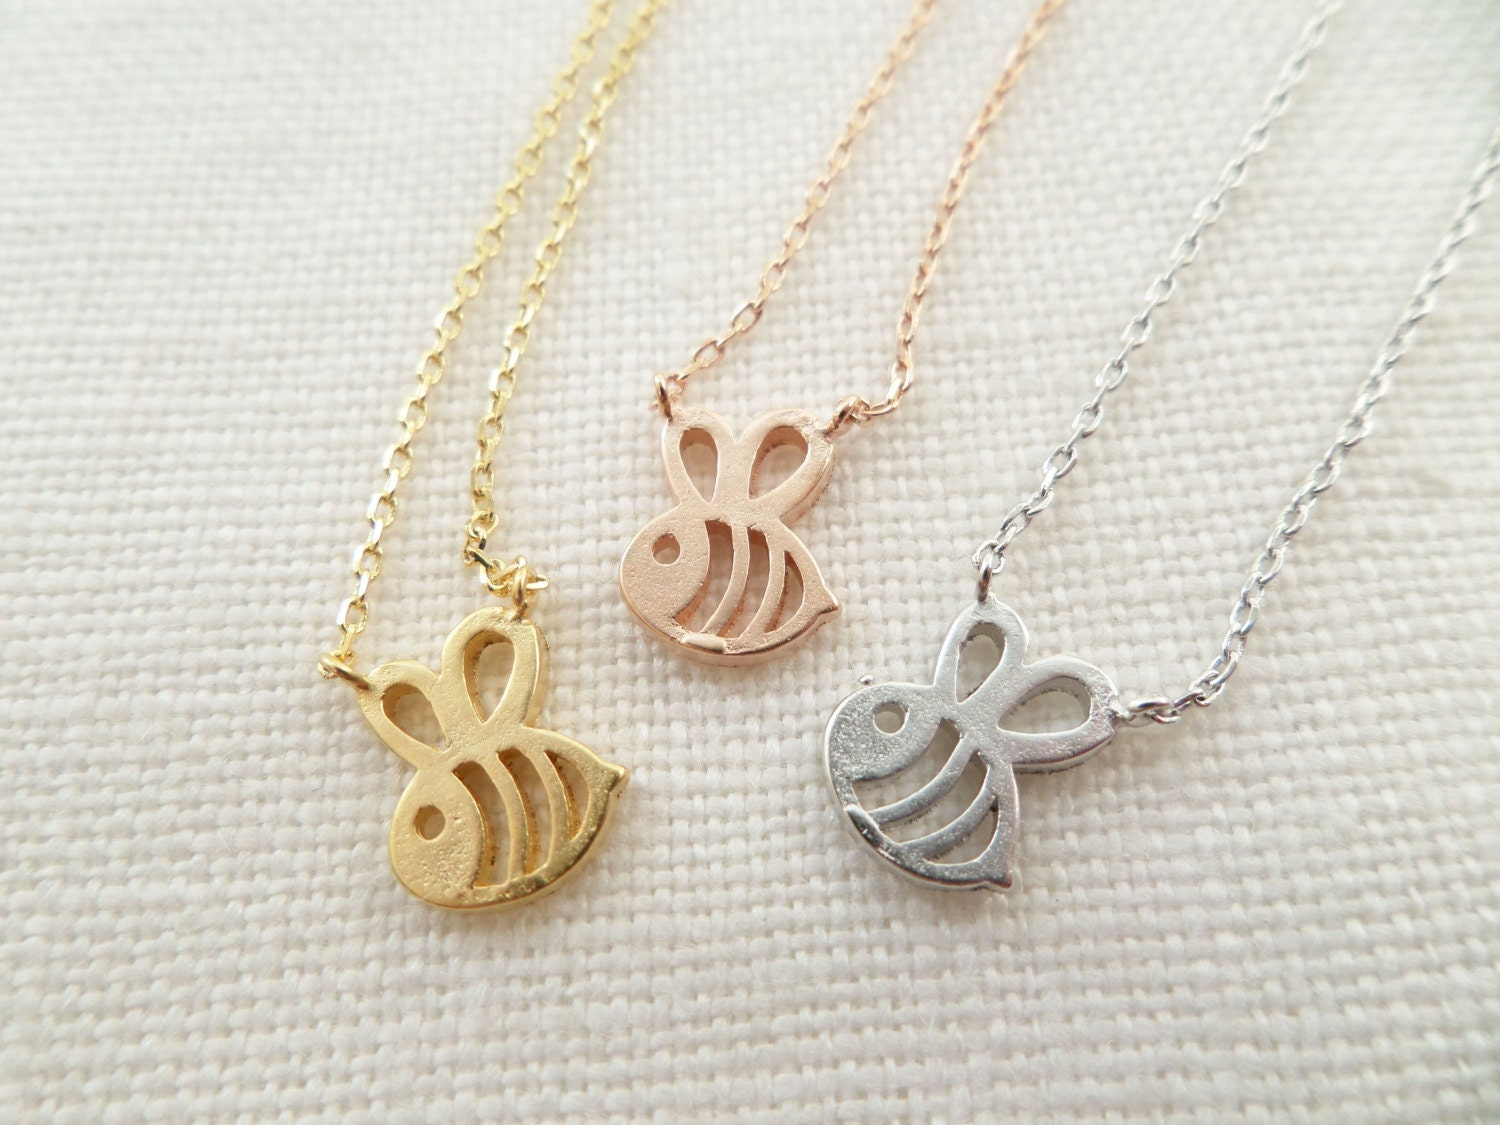 jewellery rose bumble necklace bee kit gold heath plated image